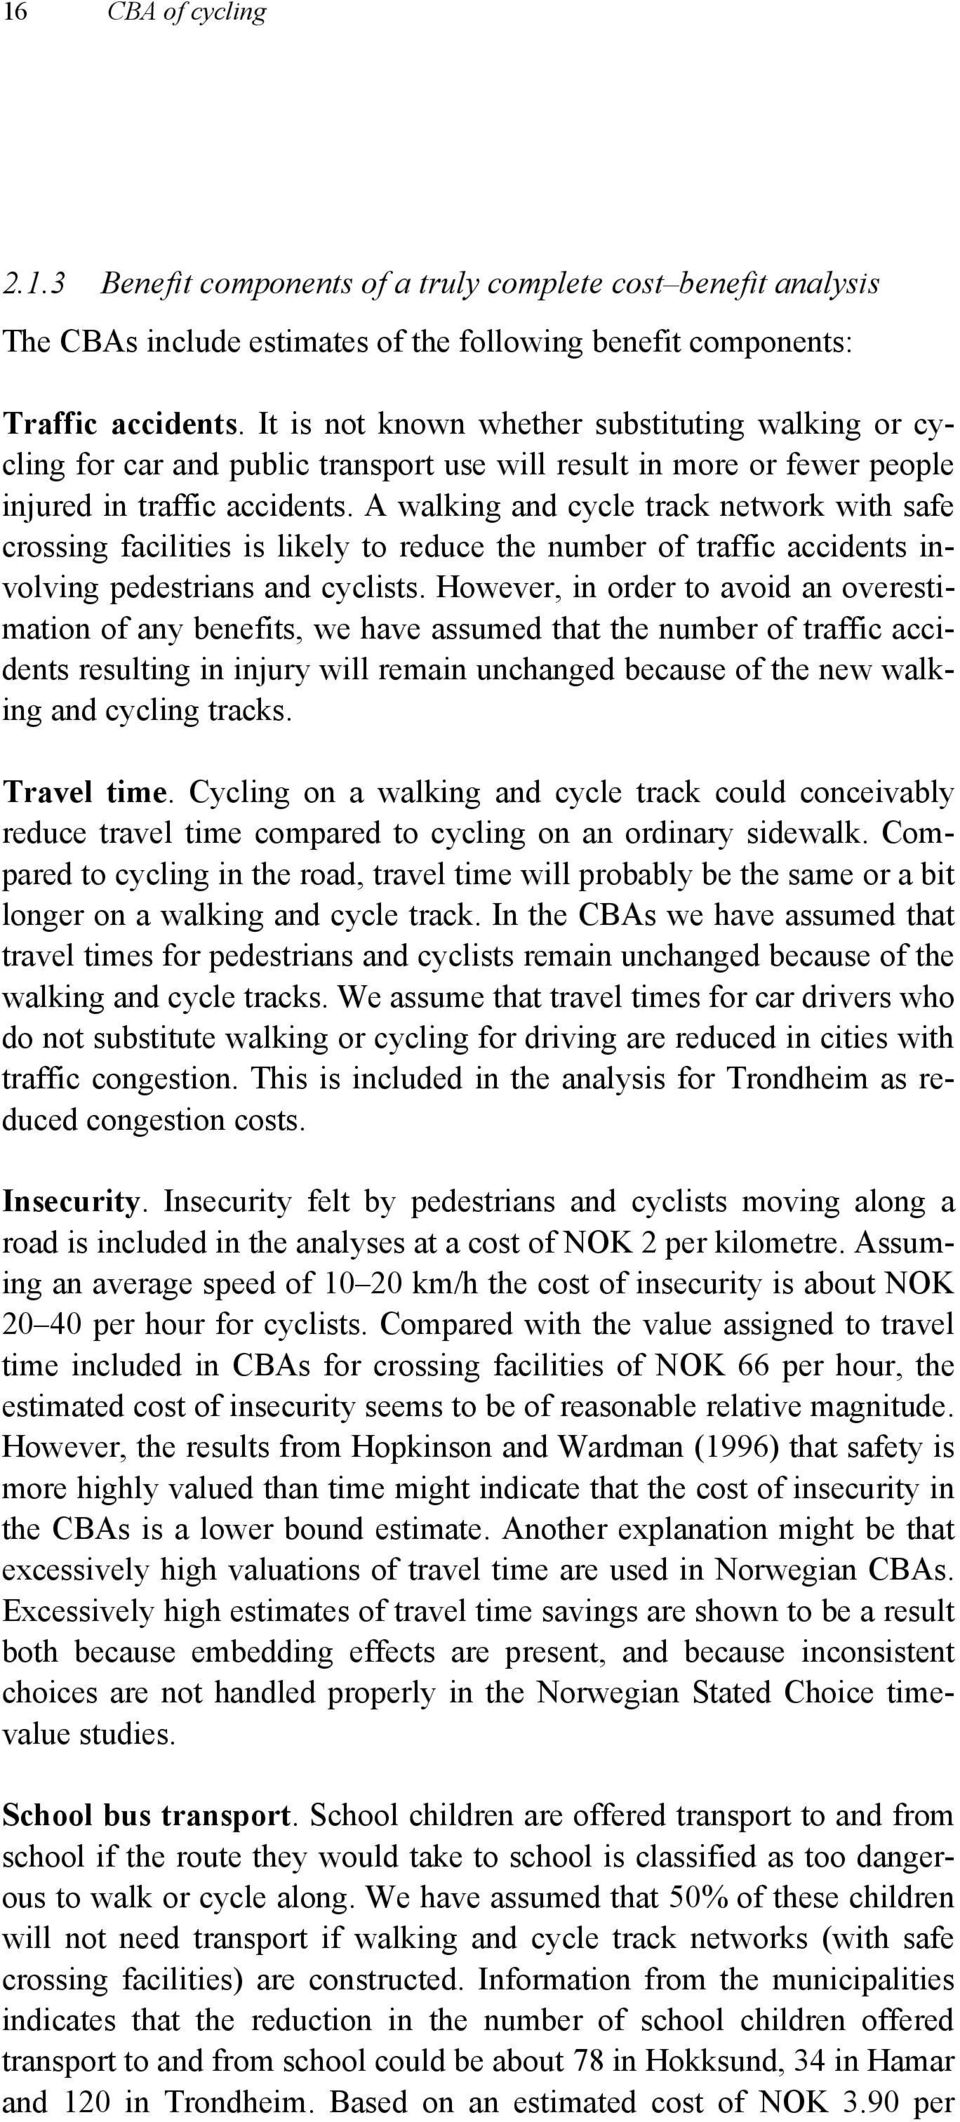 A walking and cycle track network with safe crossing facilities is likely to reduce the number of traffic accidents involving pedestrians and cyclists.